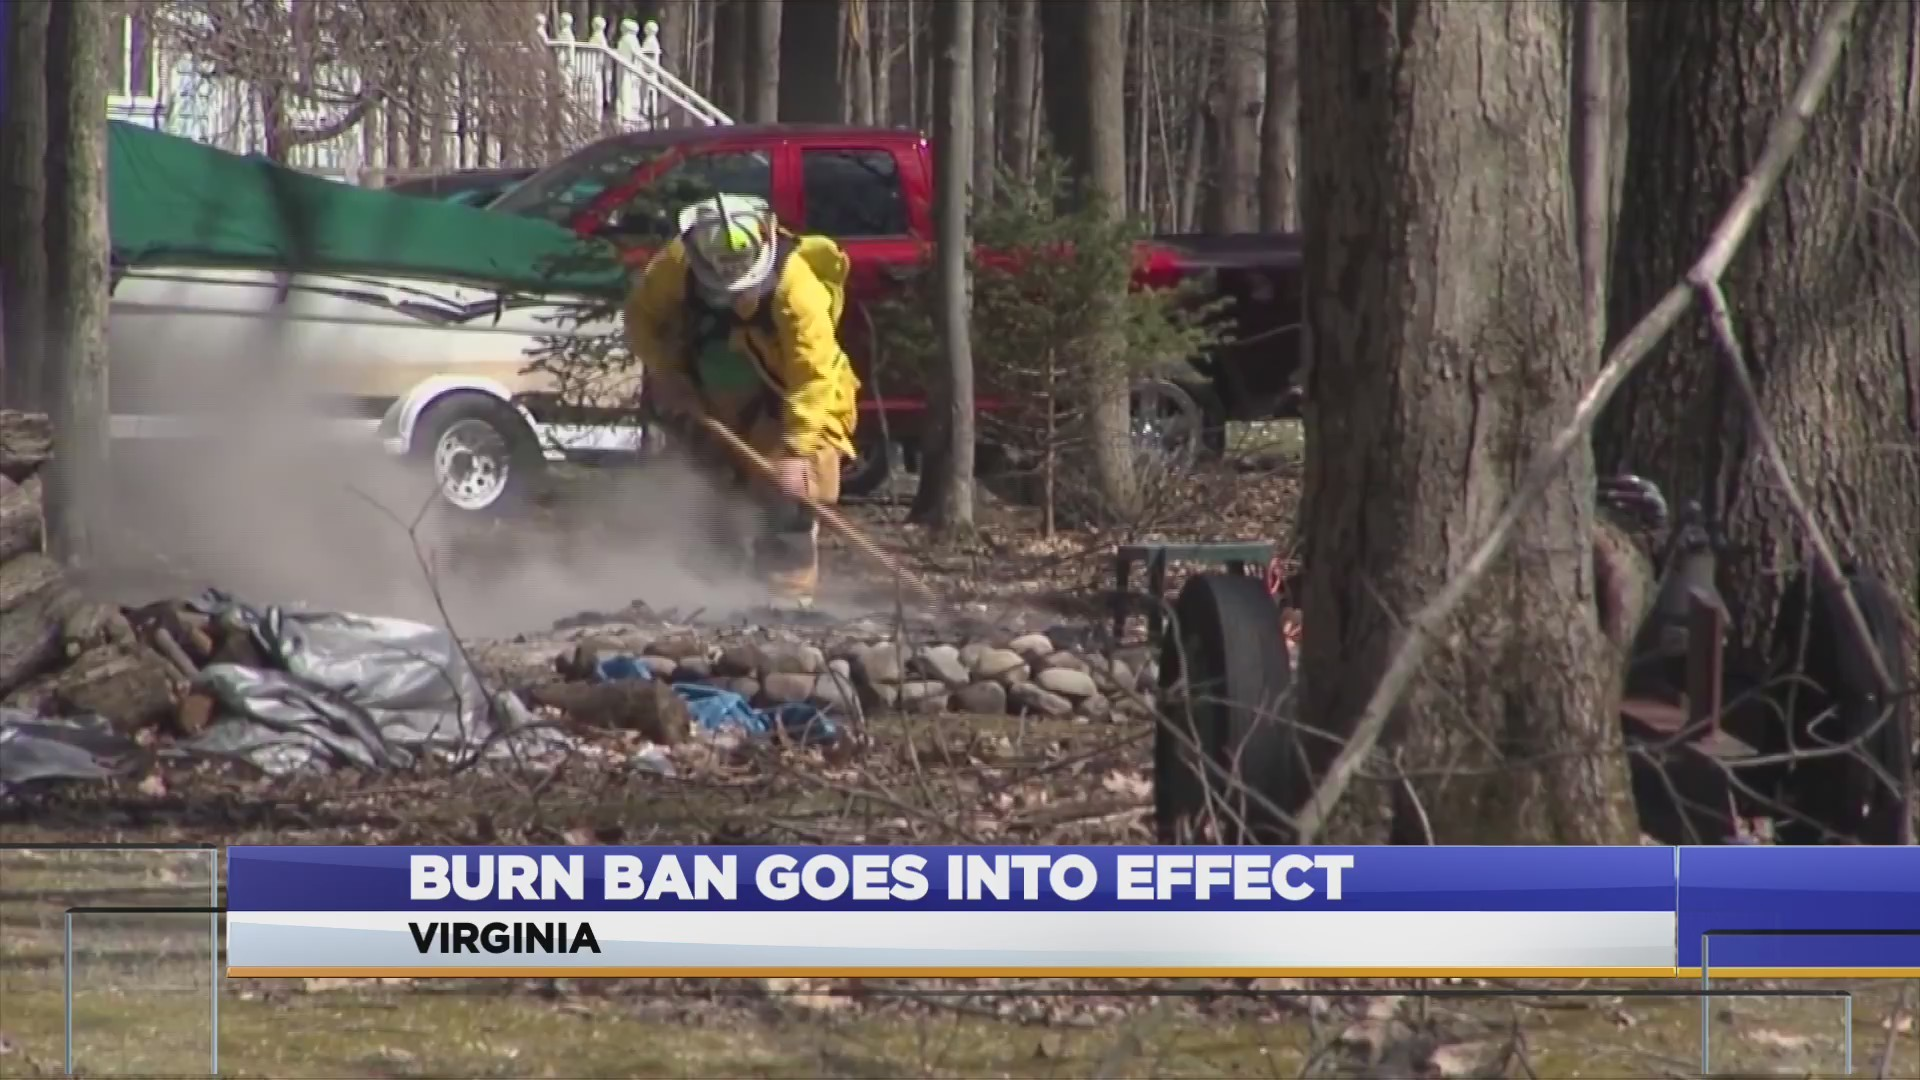 VIRGINIA BURN BAN